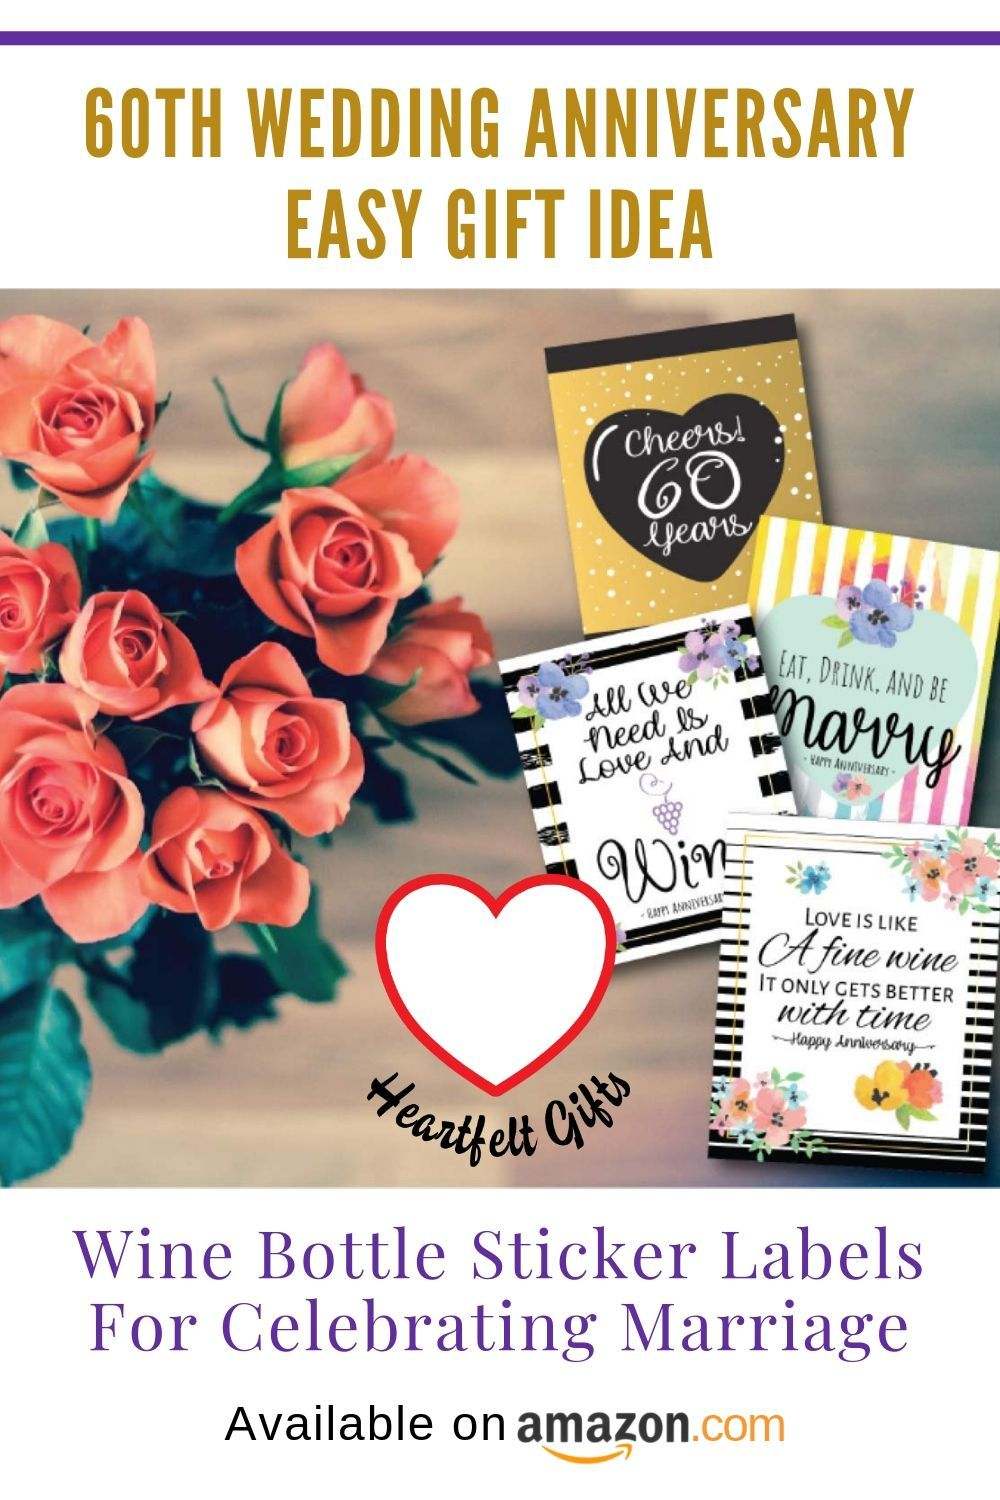 Wine bottle sticker labels for celebrating marriage! 60th